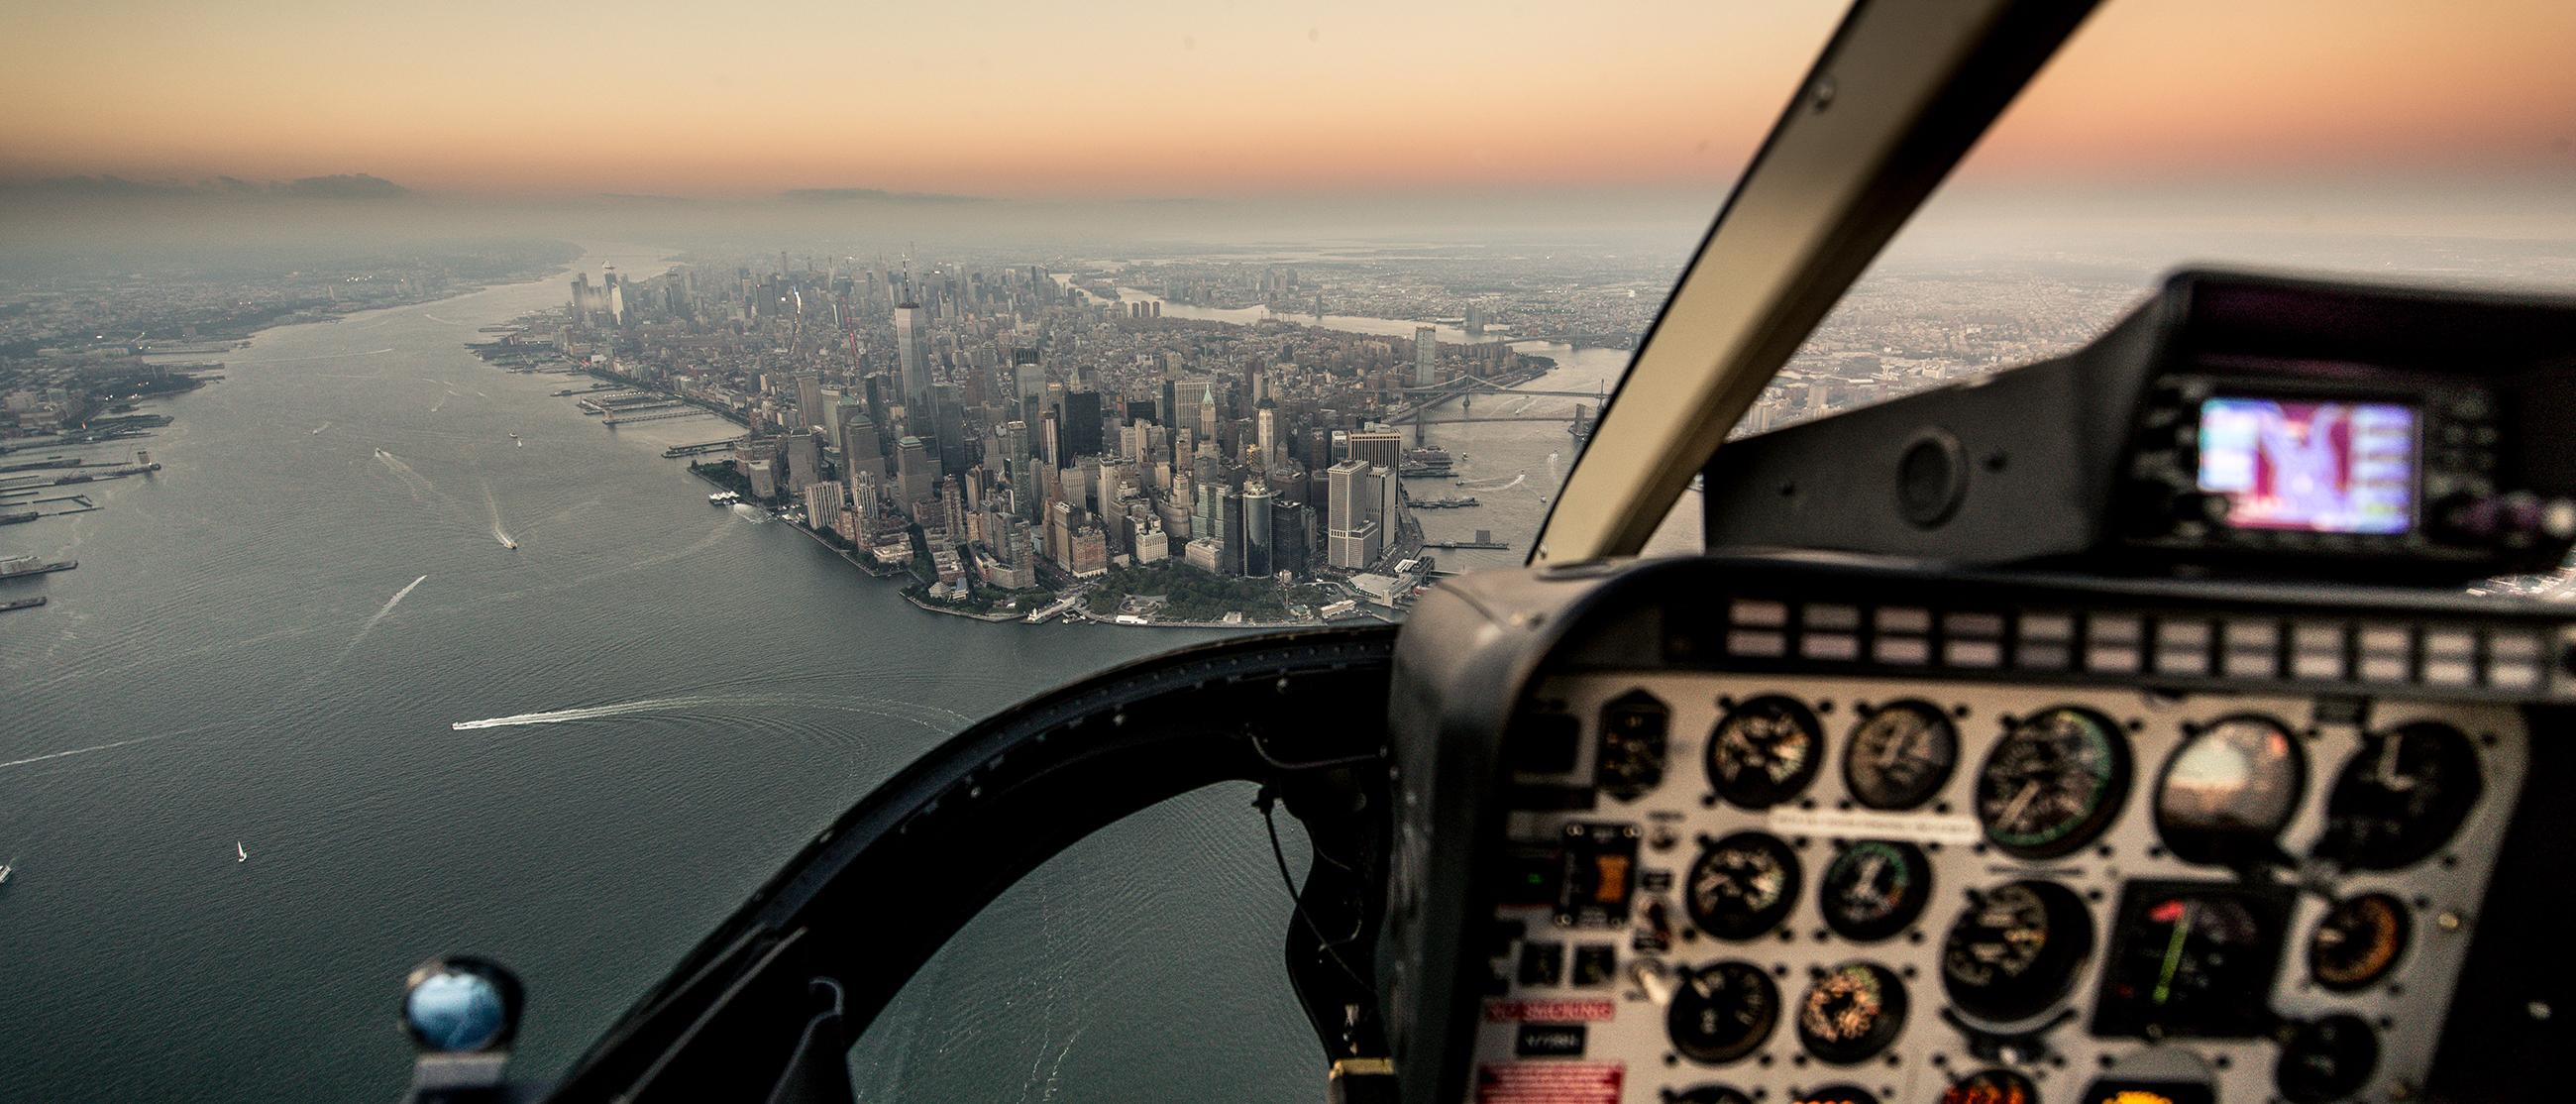 A view of New York City from inside a helicopter.